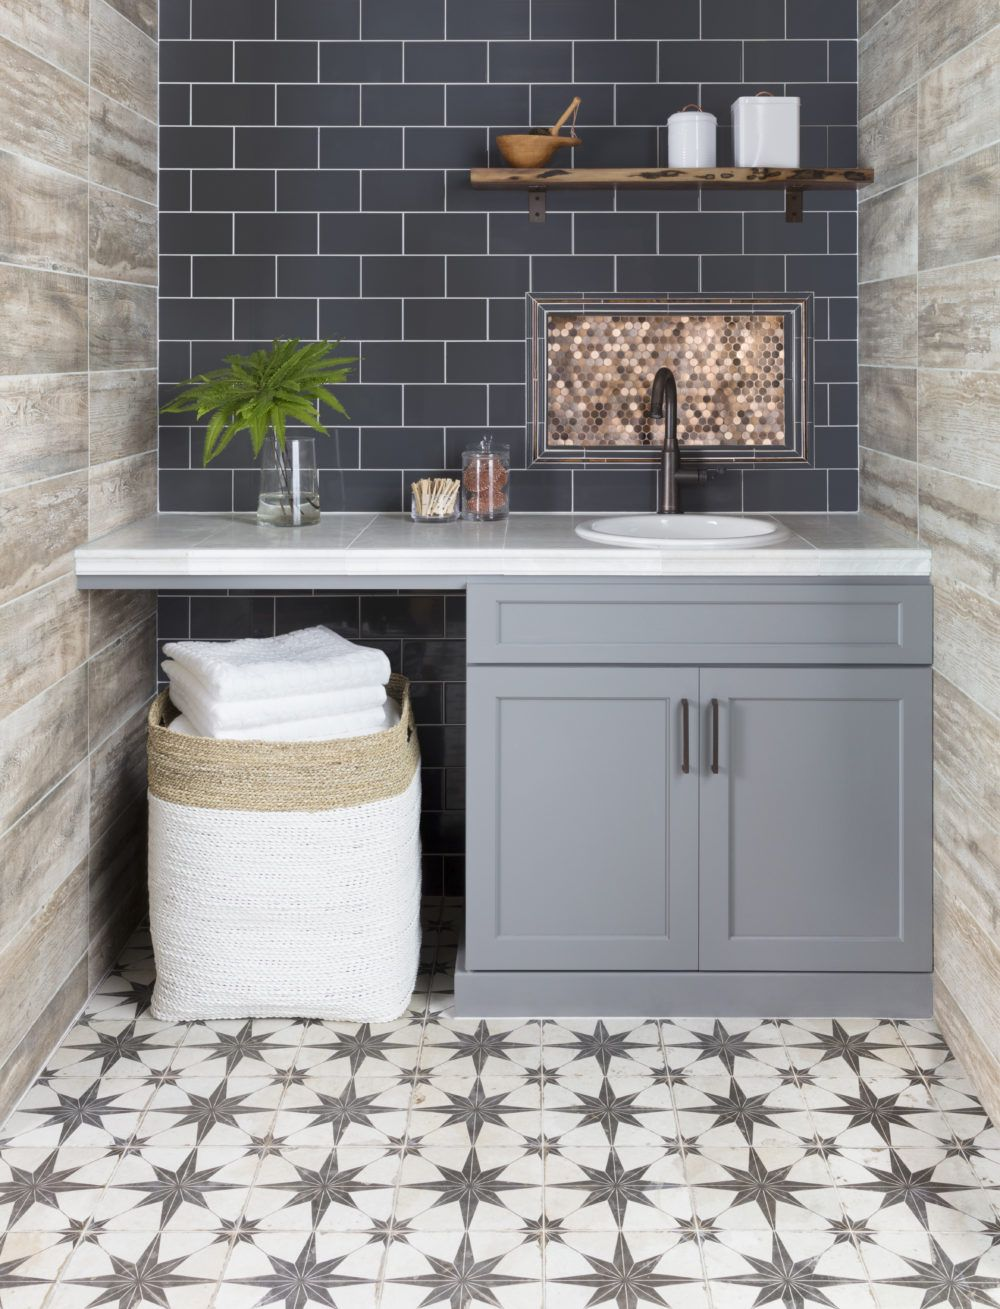 Tried And True Wall And Floor Tile Combinations The Tile Shop Blog Modern Farmhouse Design Modern Farmhouse Decor Modern Farmhouse Bathroom